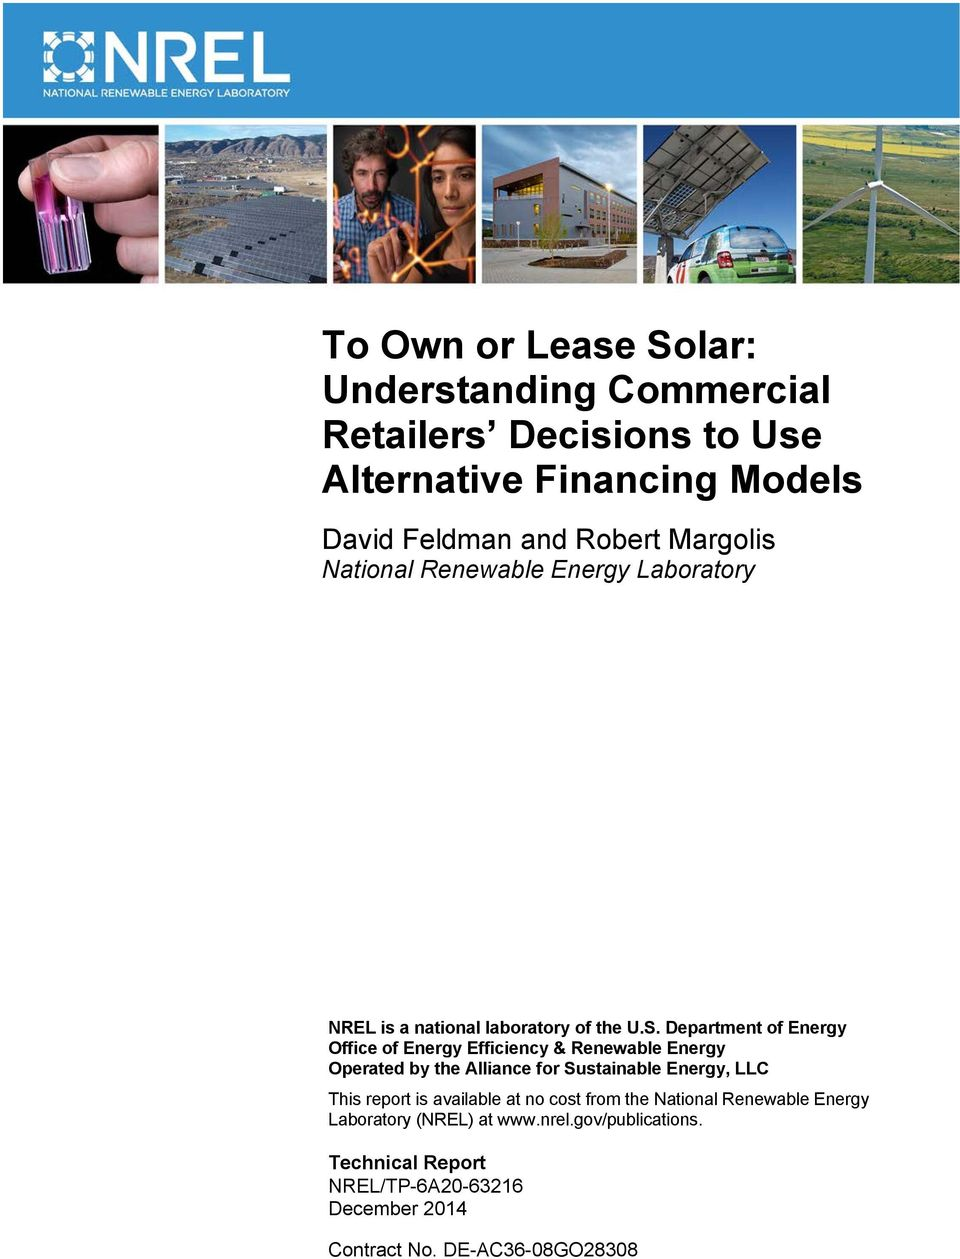 Department of Energy Office of Energy Efficiency & Renewable Energy Operated by the Alliance for Sustainable Energy, LLC This report